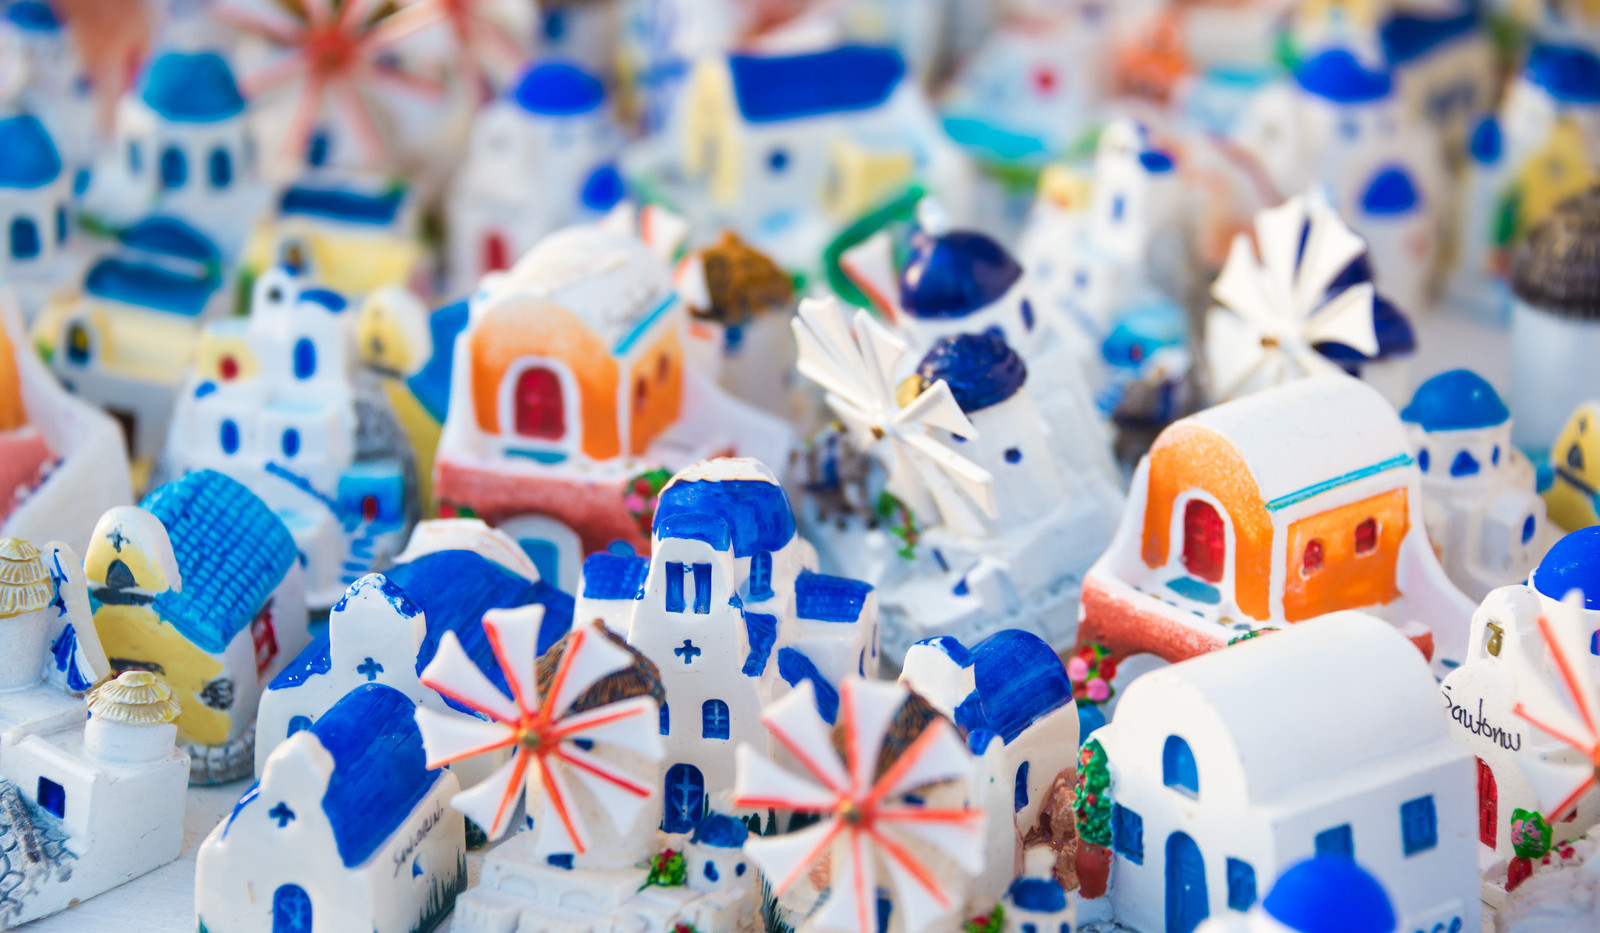 Canva - Souvenirs on Santorini island, G